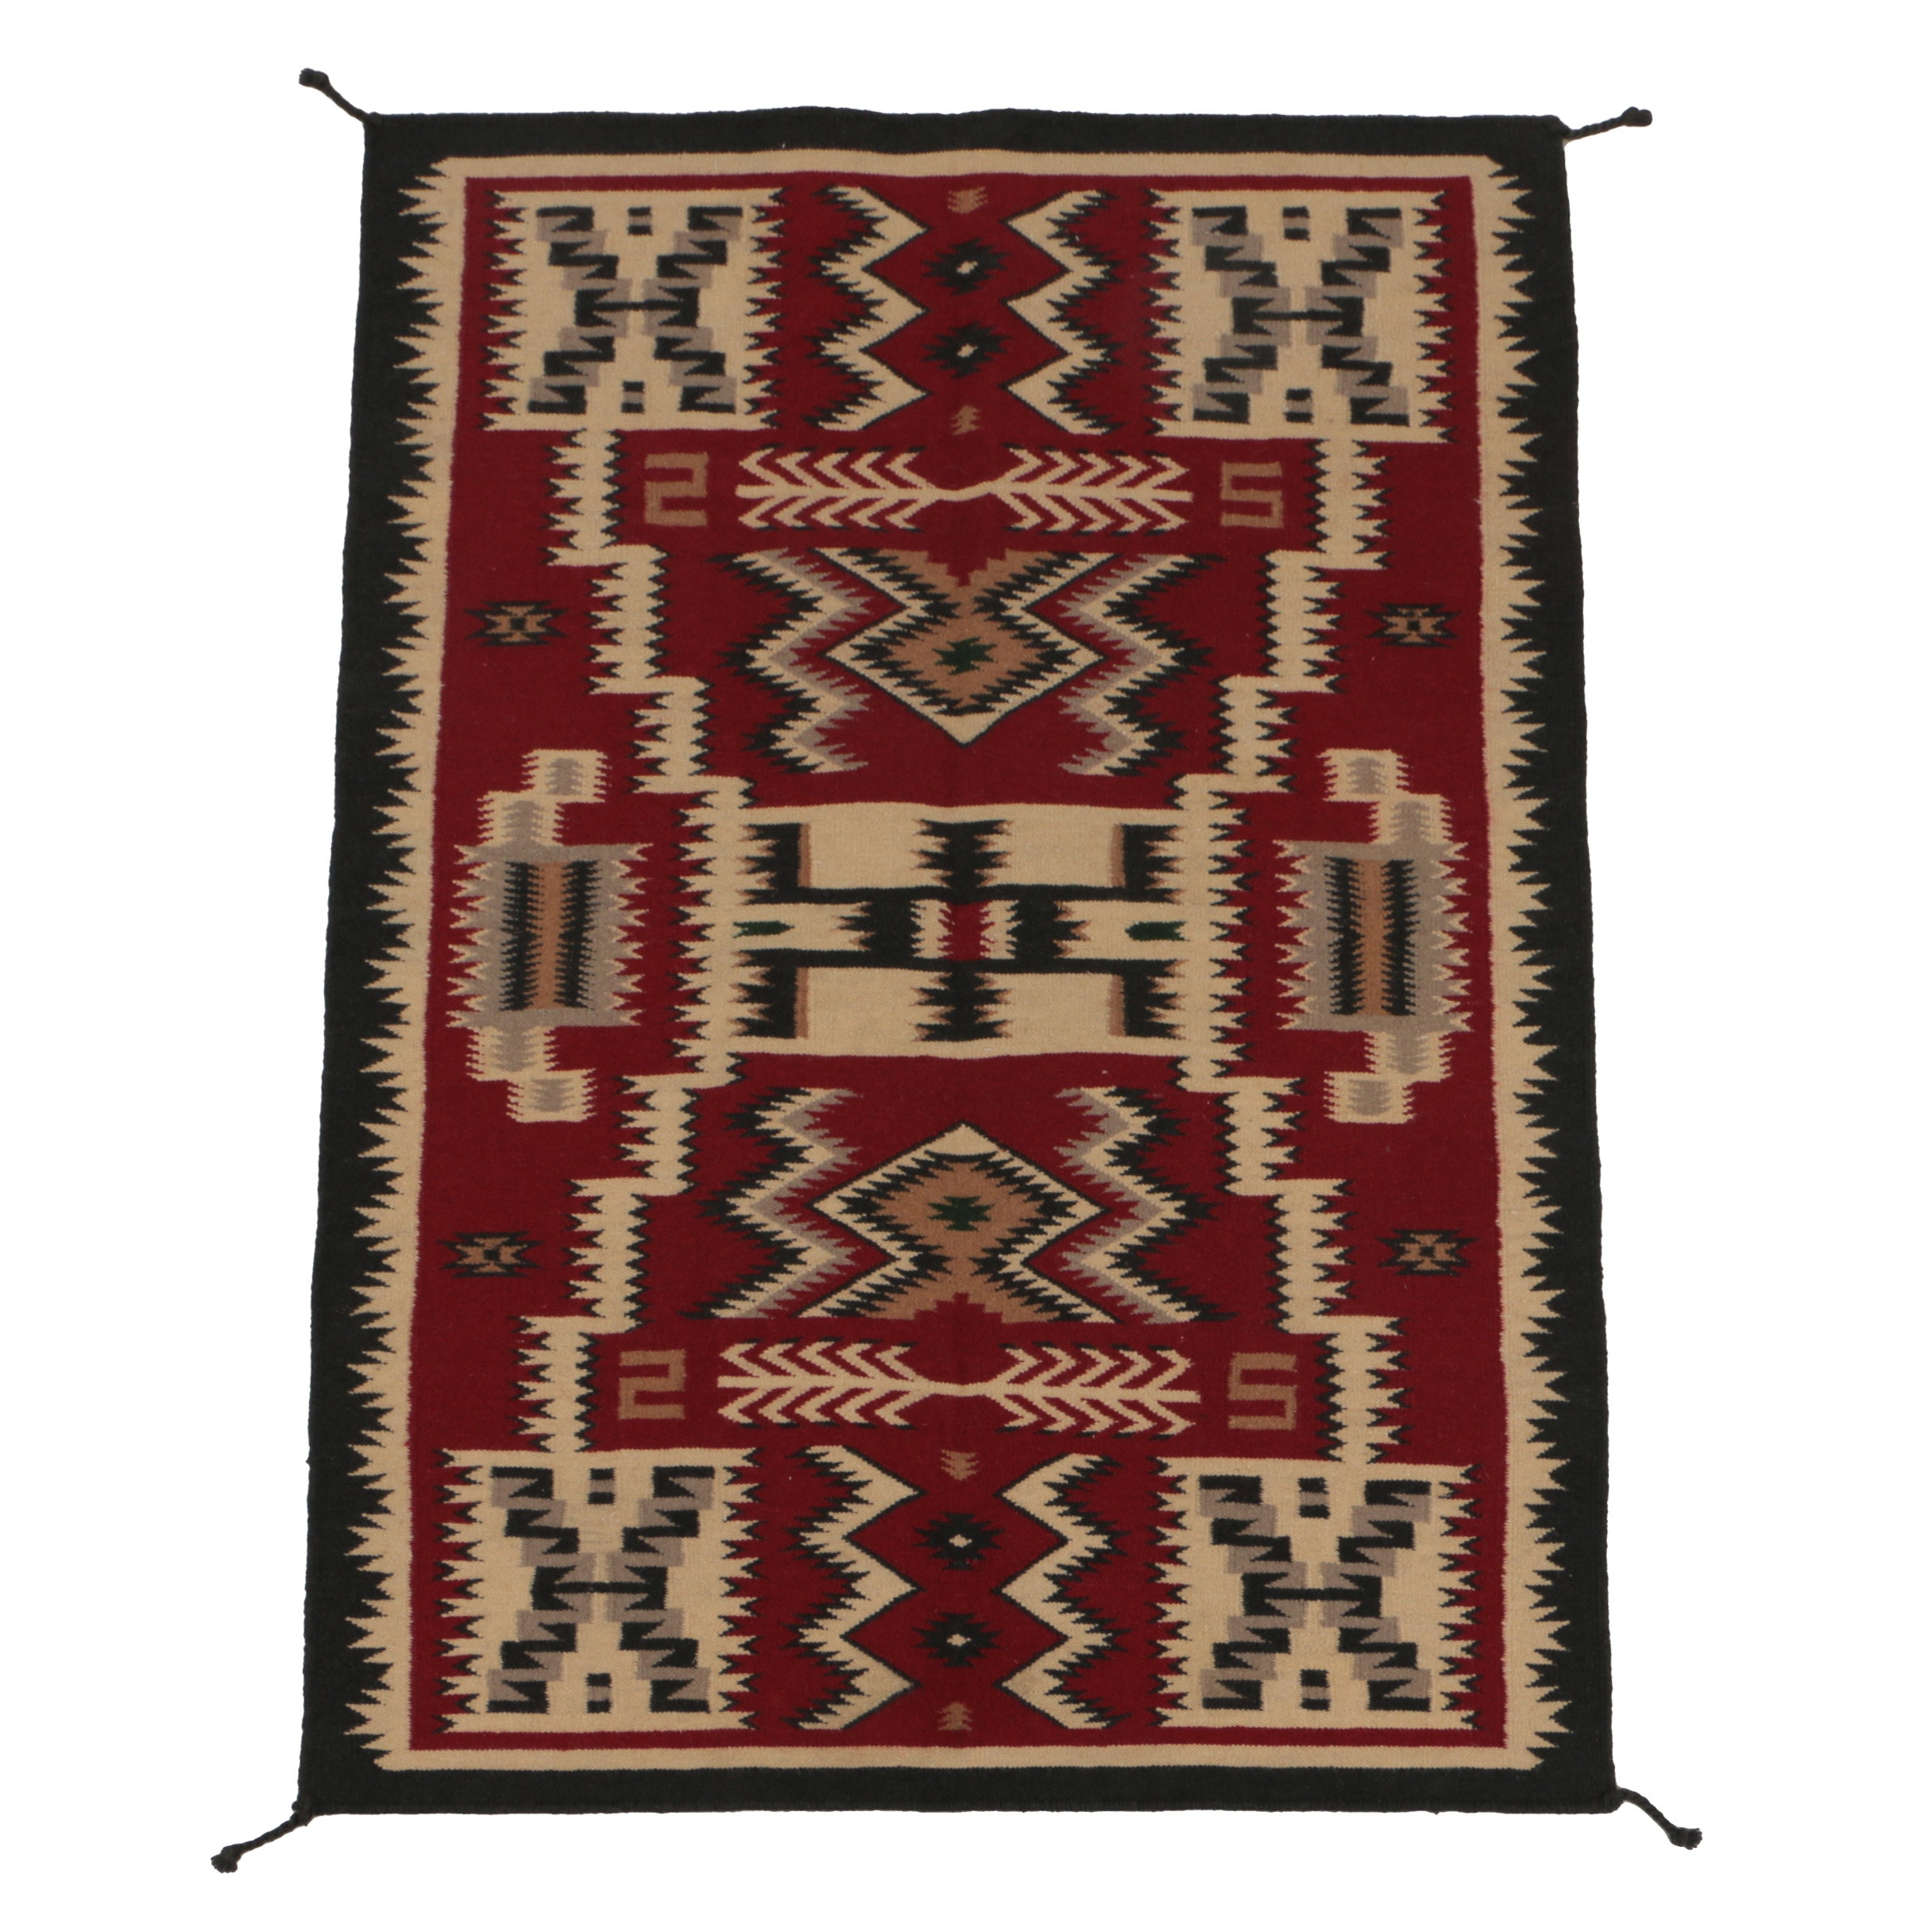 Handwoven Native American-Style Wool Accent Rug